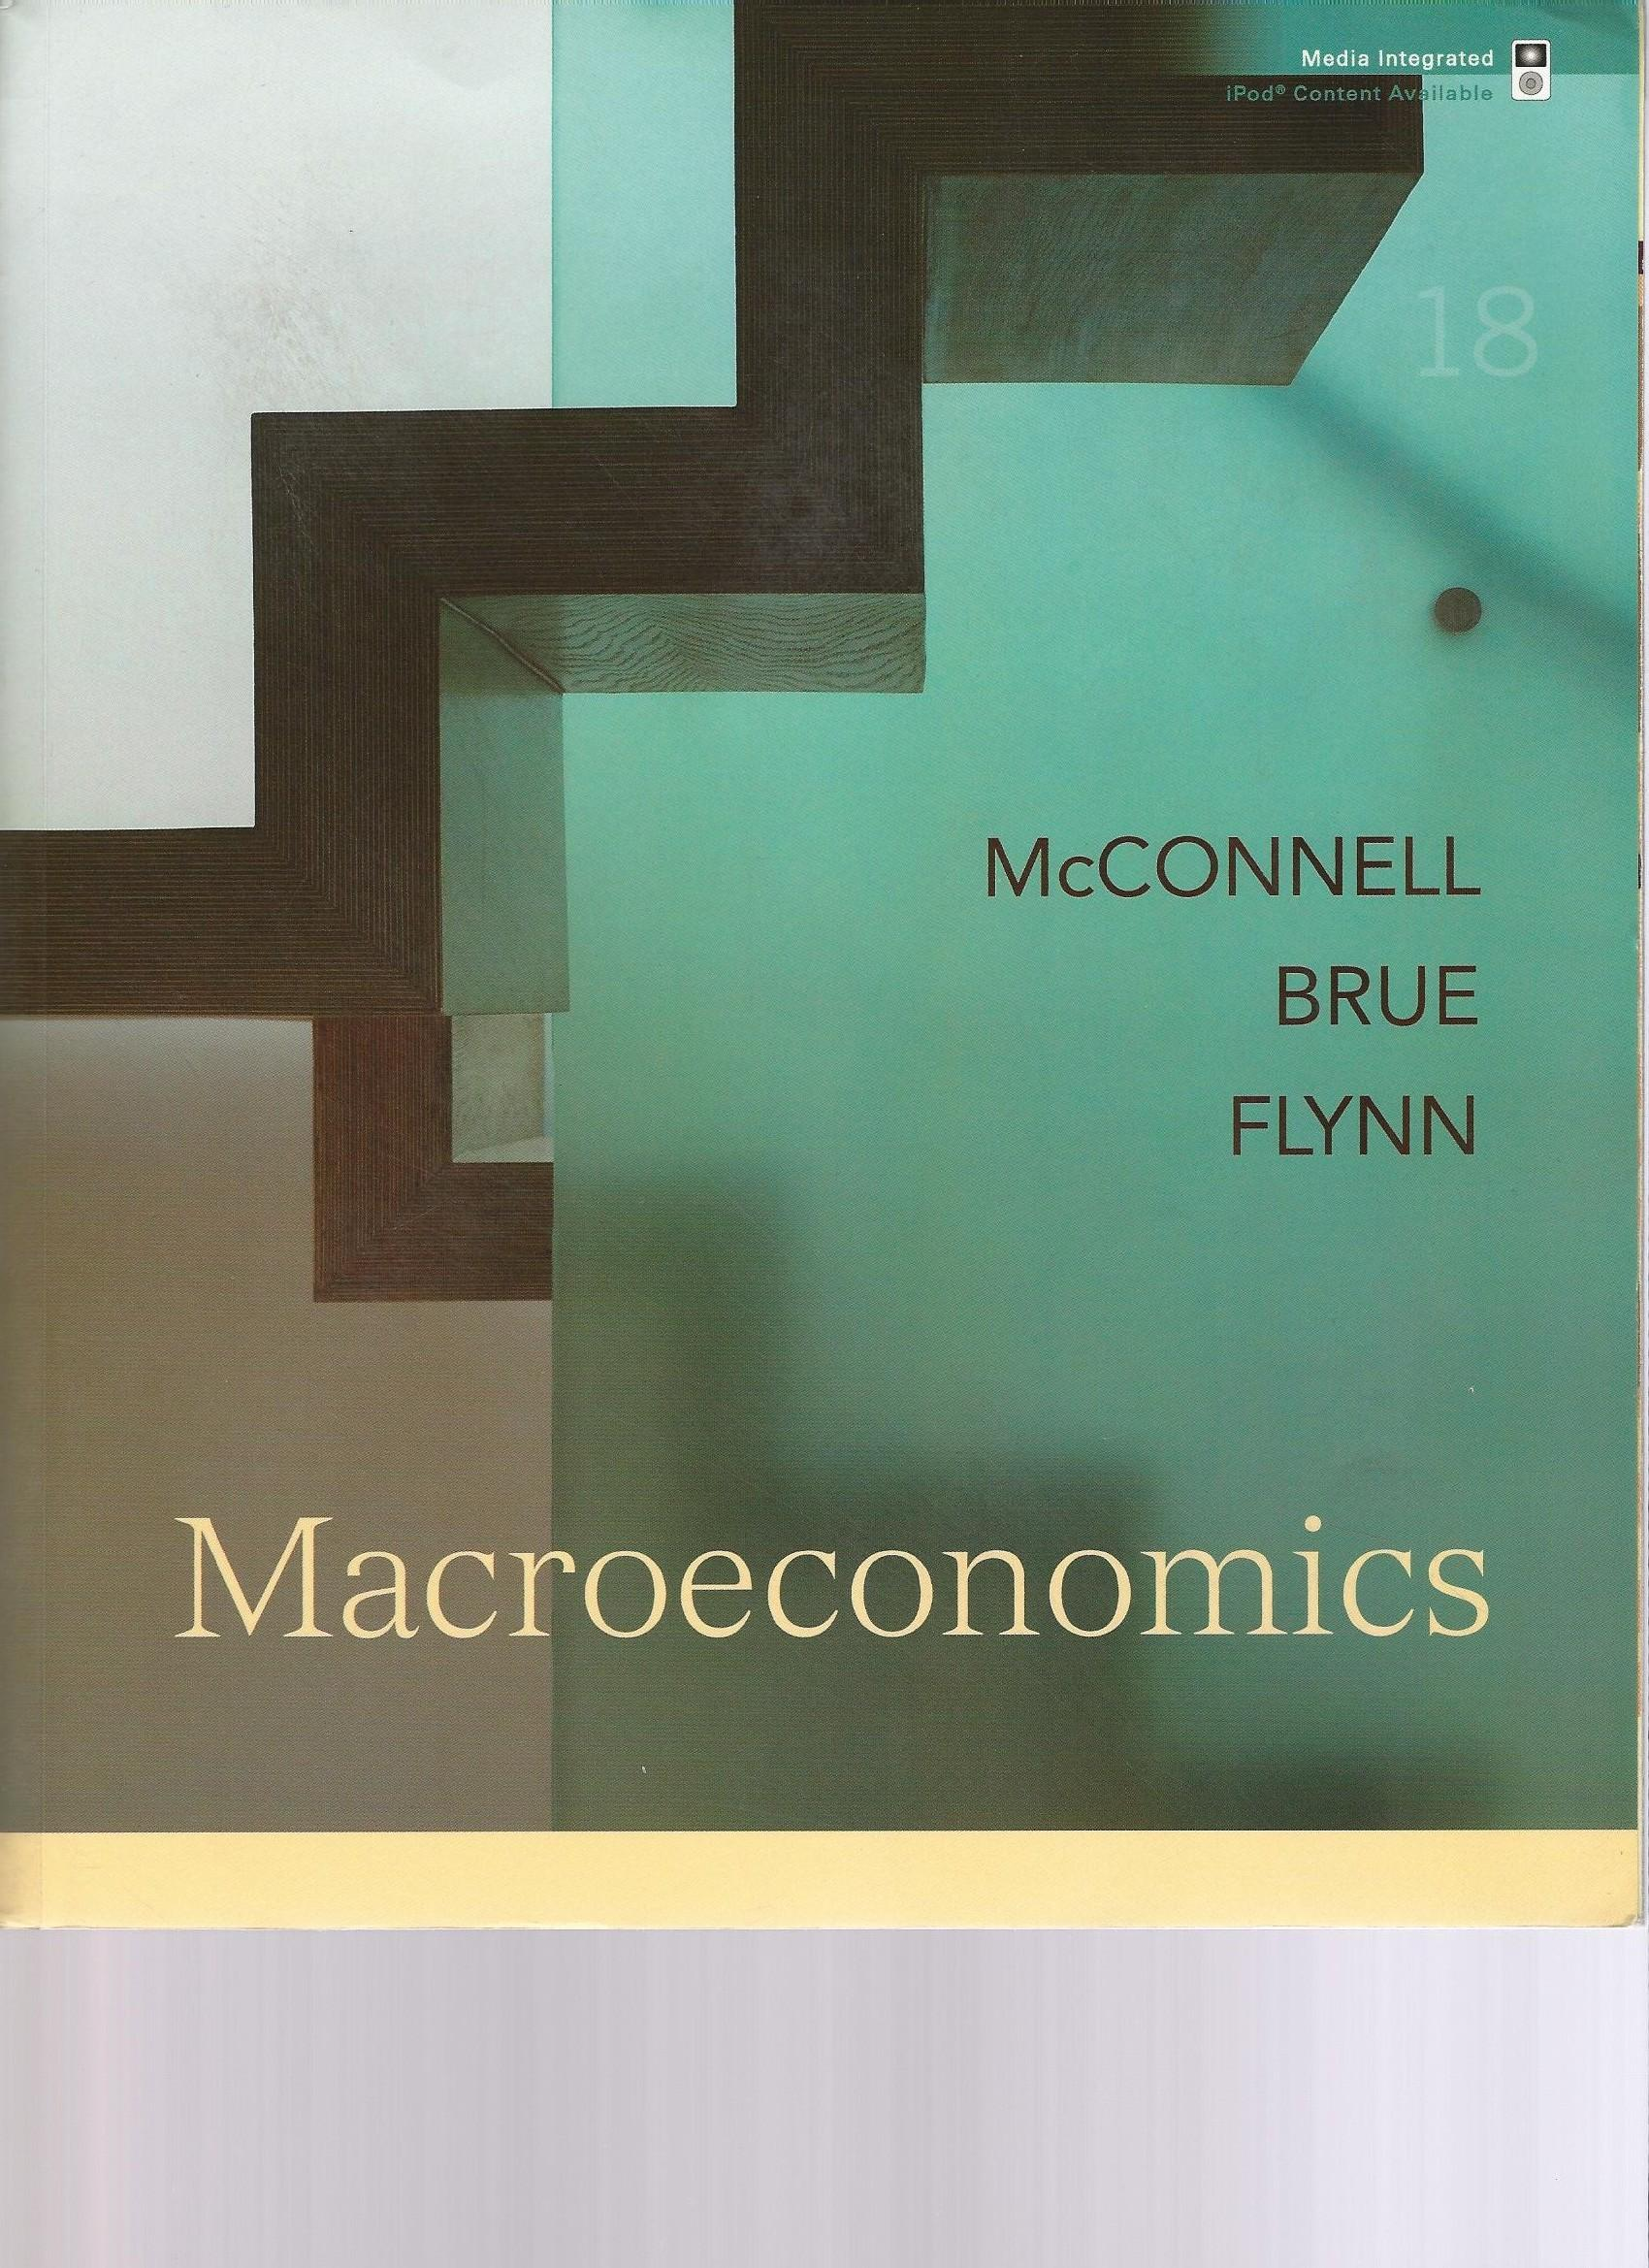 difference between microeconomics and macroeconomics There are differences between microeconomics and macroeconomics, although, at times, it may be hard to separate the functions of the two first and foremost, both of these terms mentioned are sub-categories of economics itself as the names of 'micro' and 'macro' imply, microeconomics.